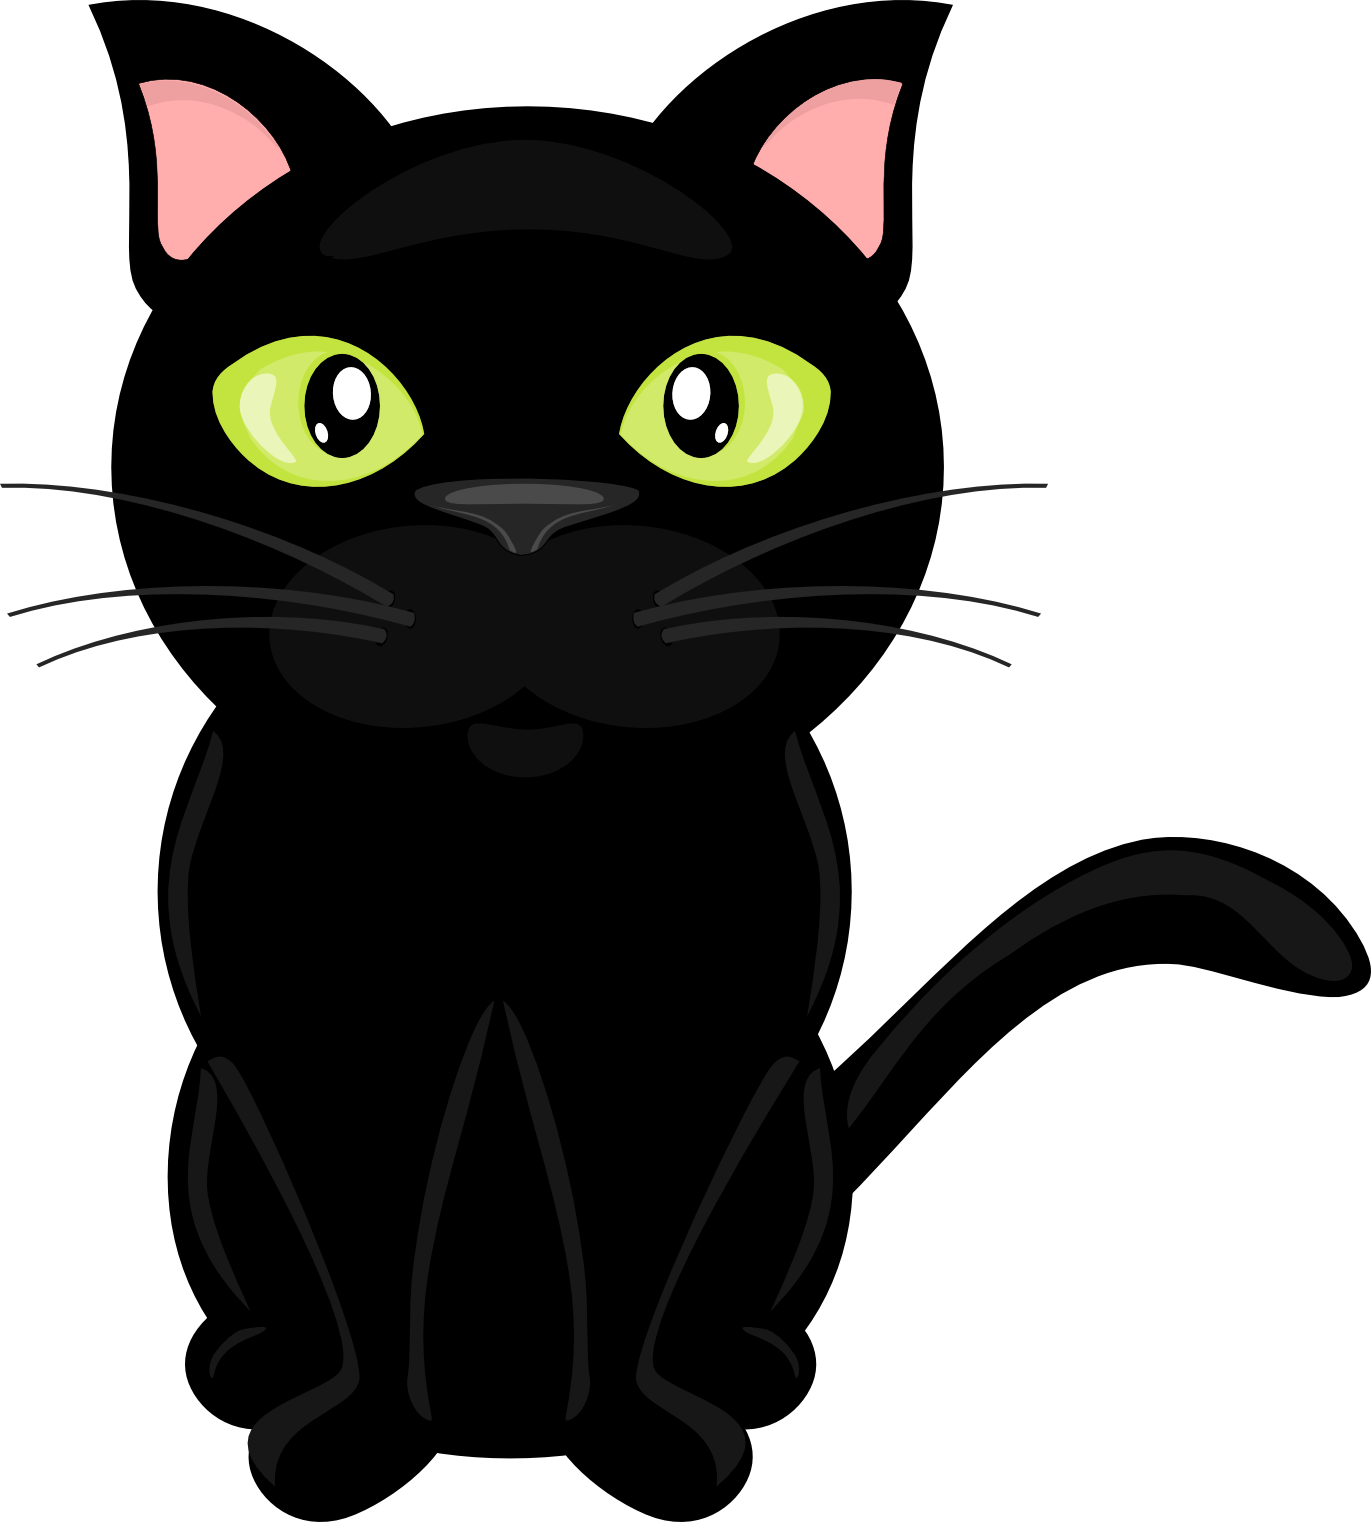 Cute black cat with green eyes clipart svg black and white On The Farm Clip-Art | Black cat silhouette,tatoos | Cat clipart ... svg black and white